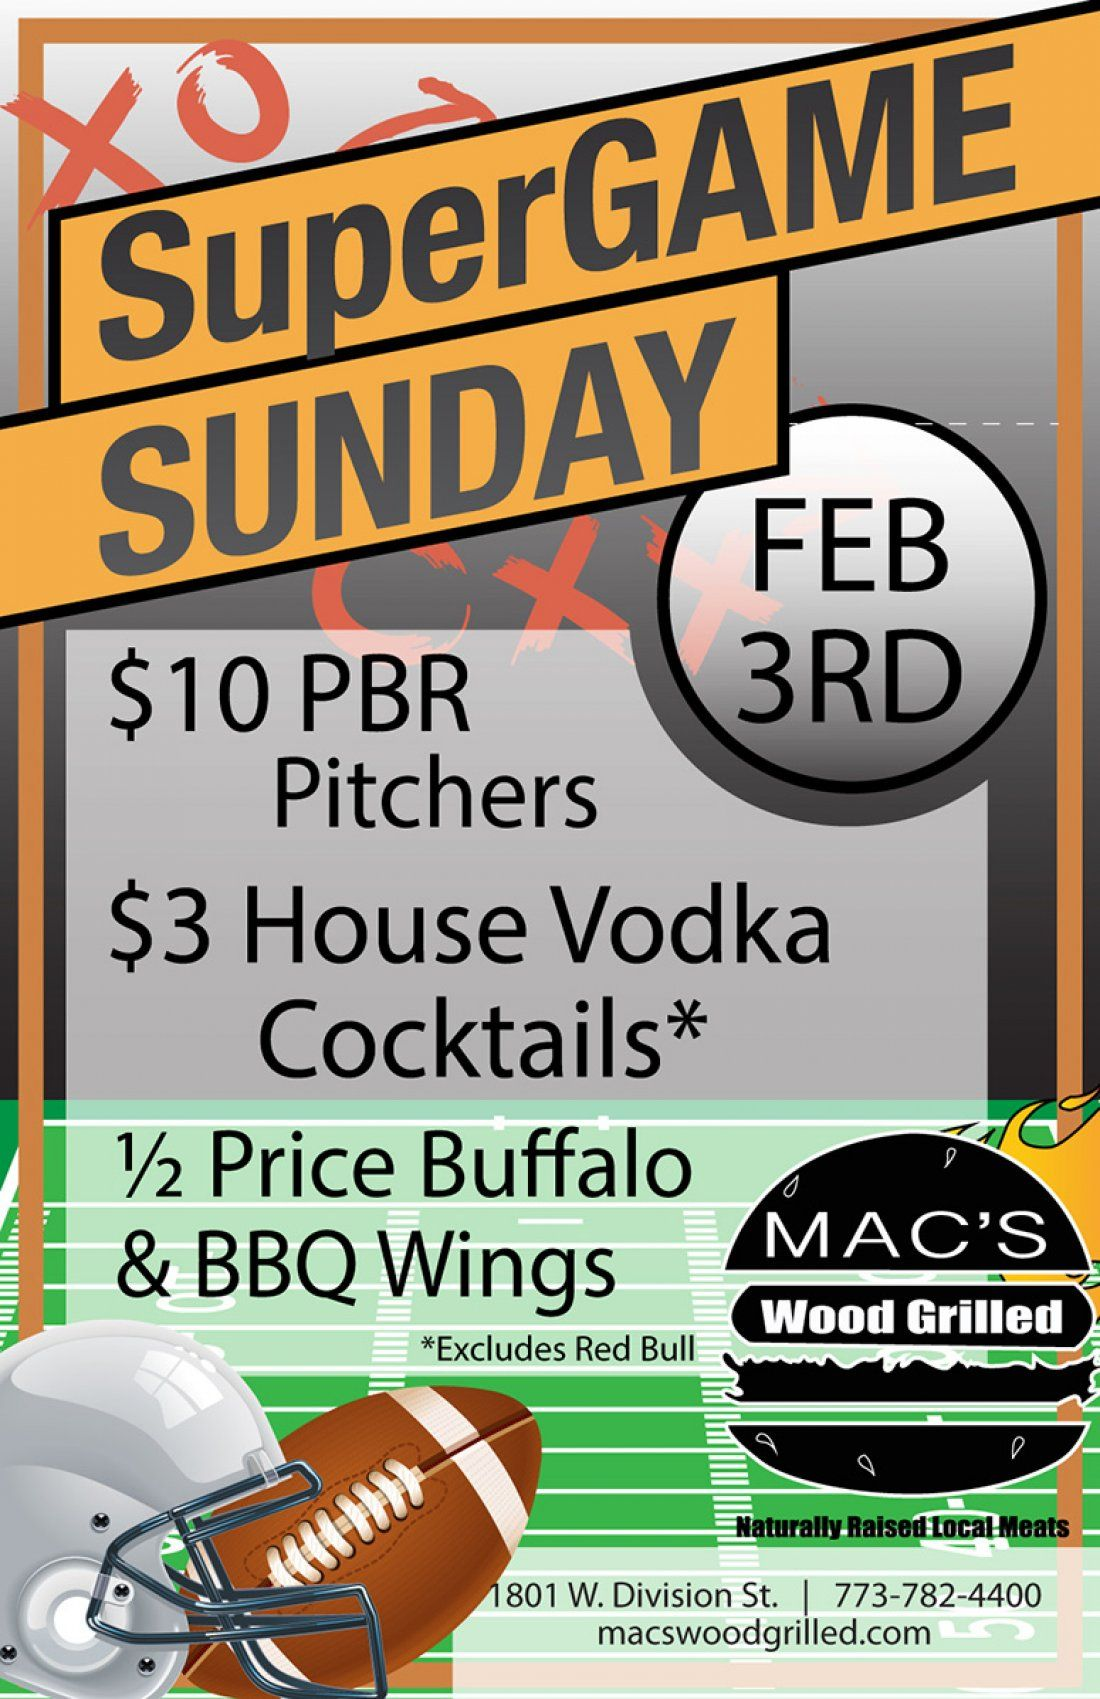 Big Game Watch Party at Macs Wood Grilled